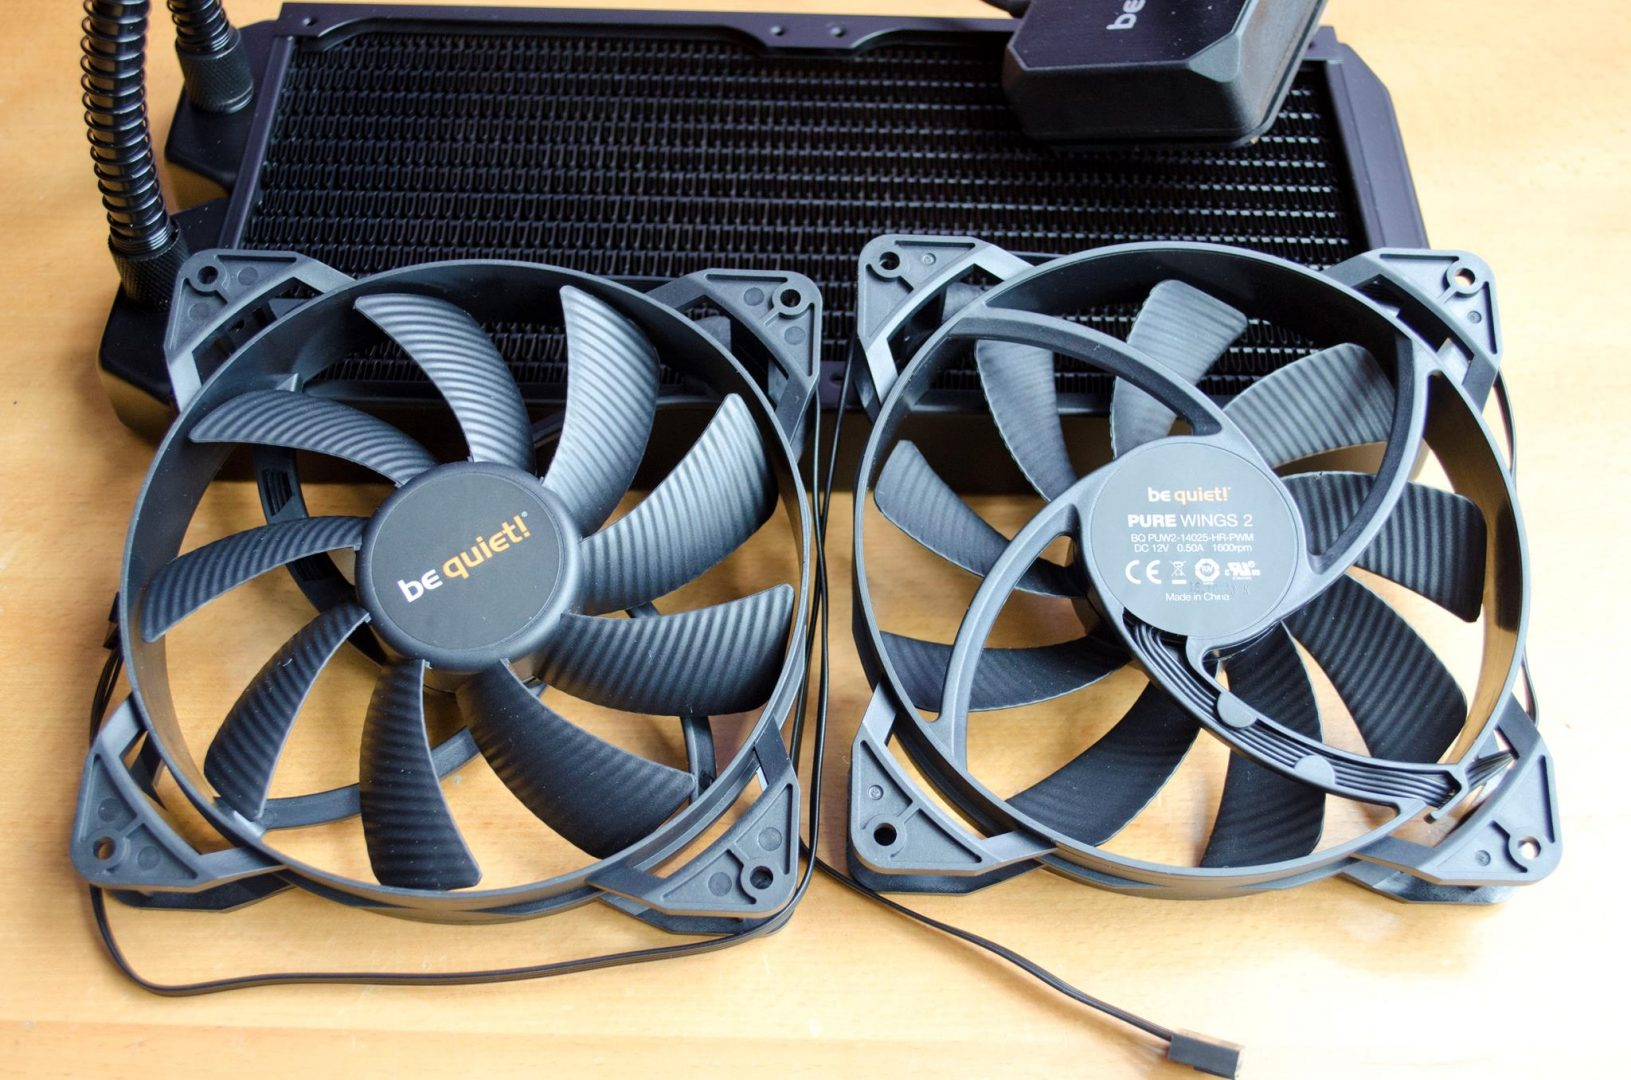 be quiet! Silent Loop 120mm and 280mm AIO CPU Cooler Review